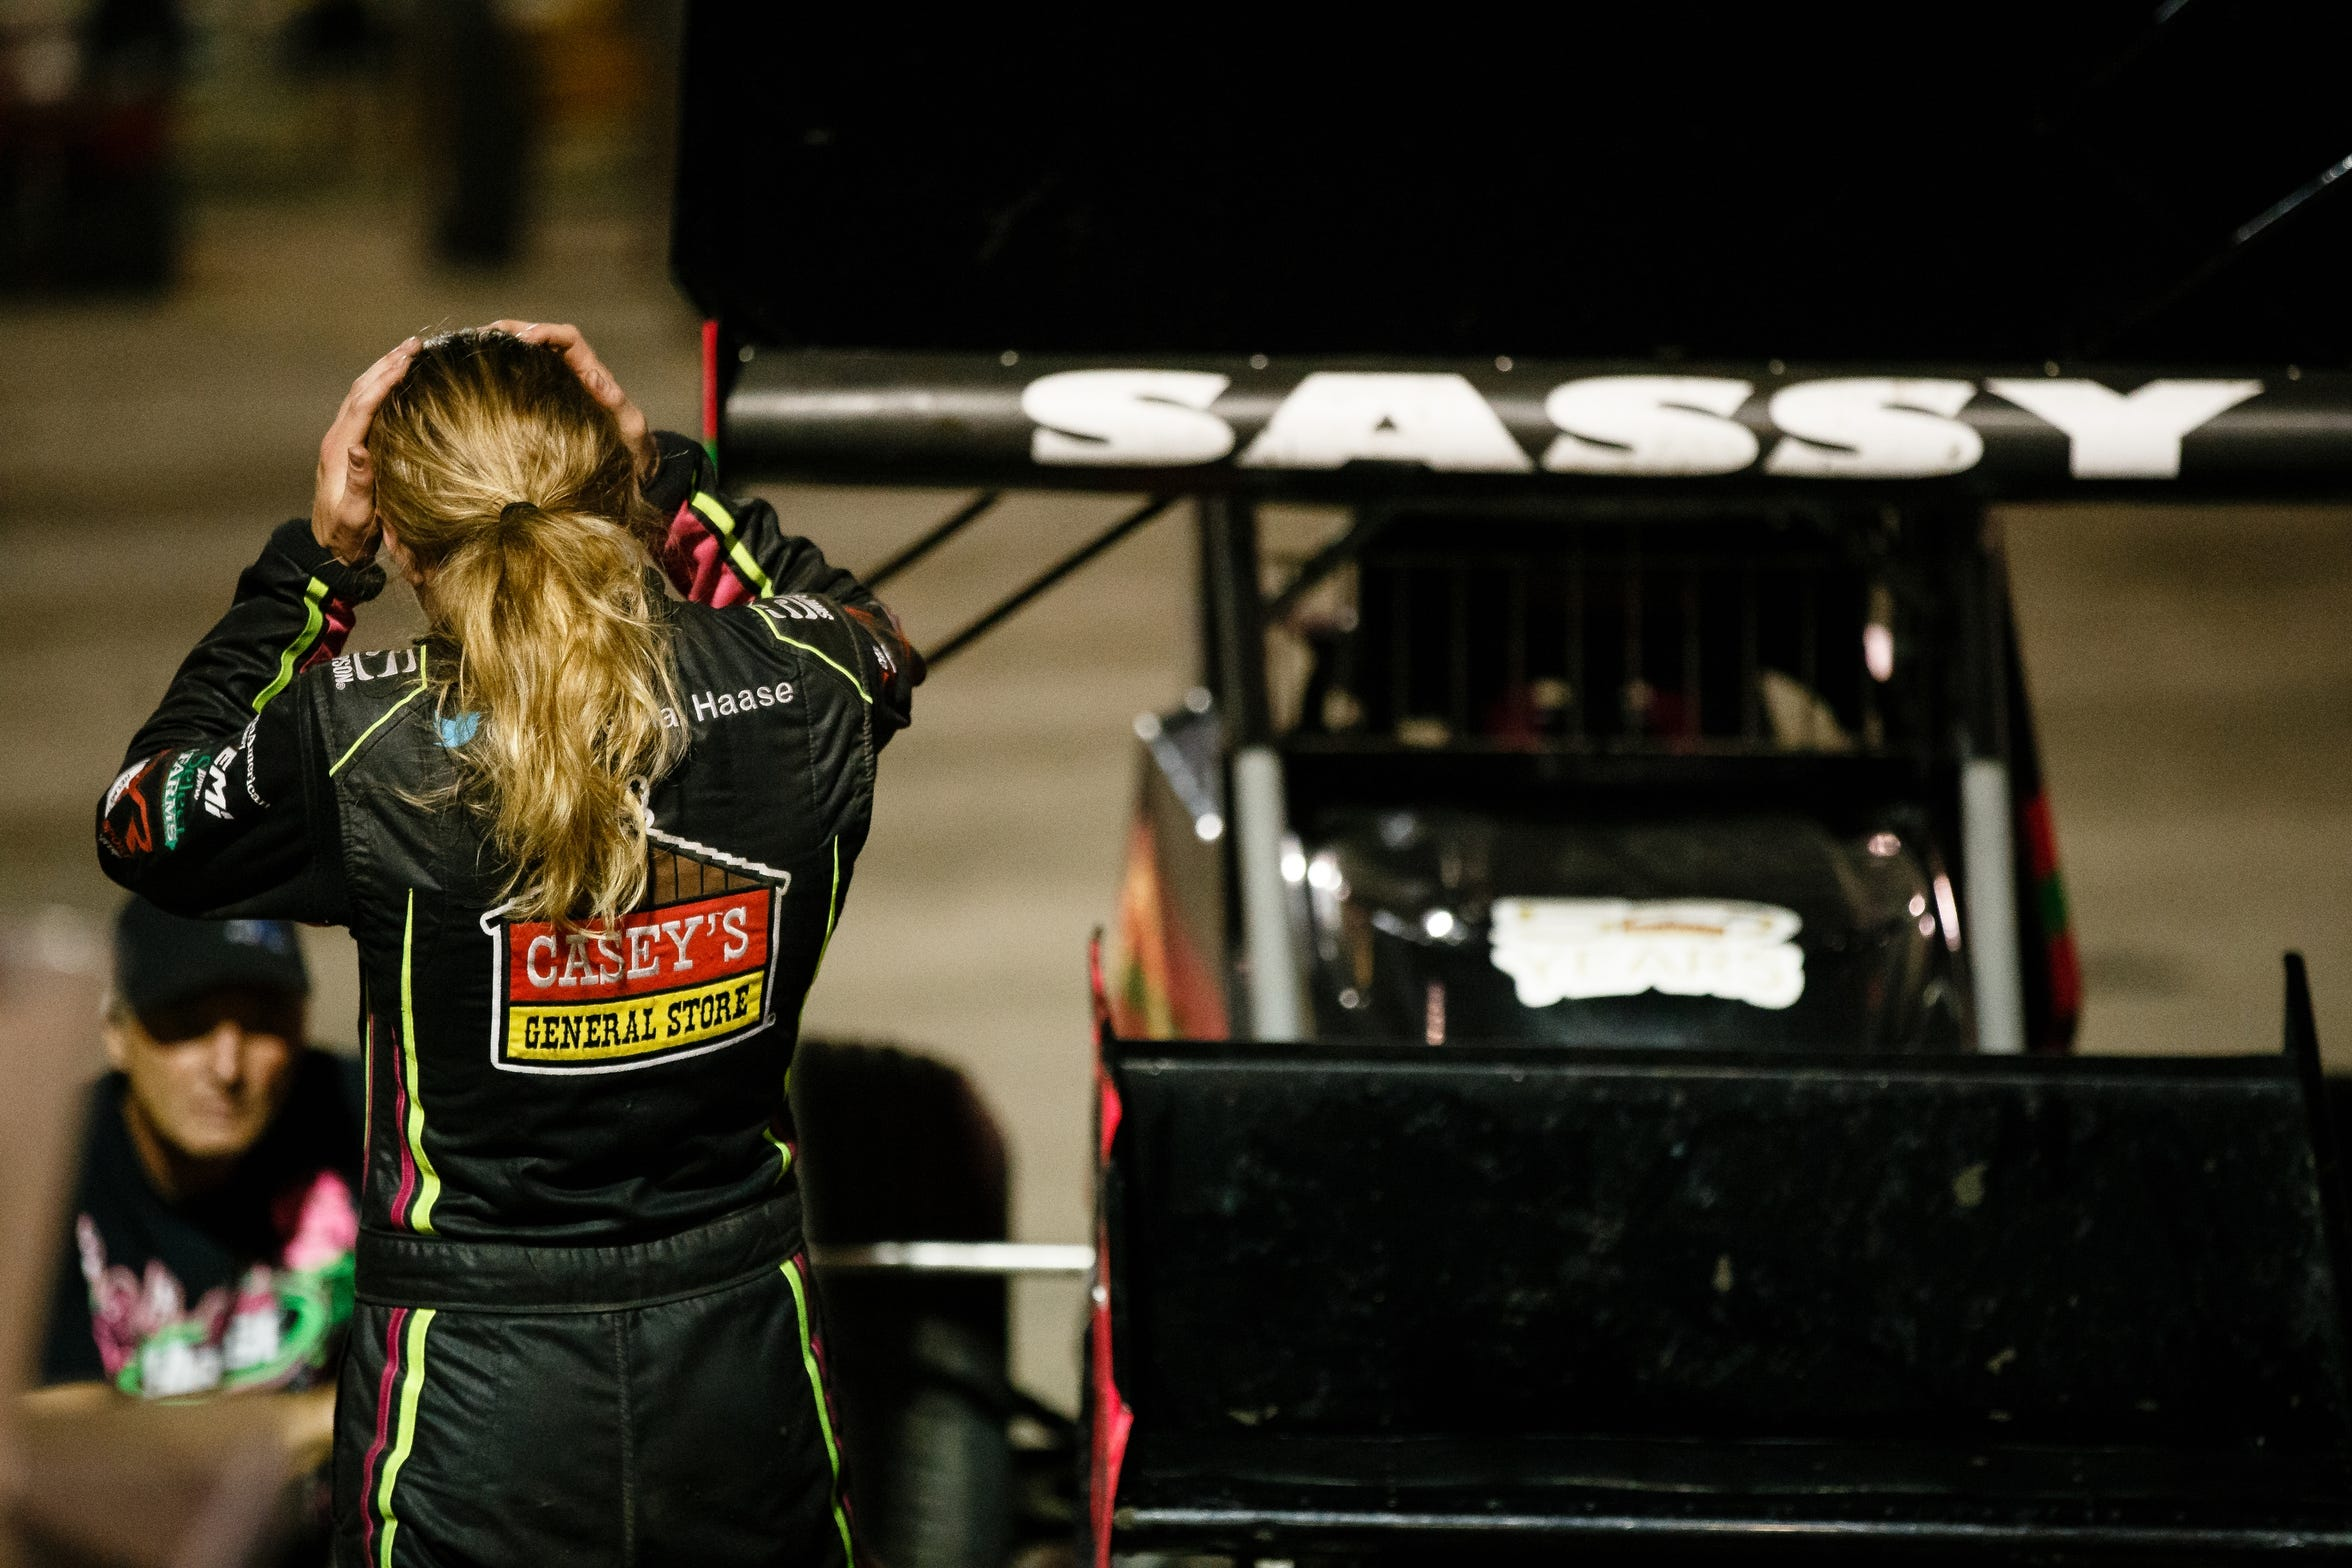 Sprint car driver McKenna Haase, 21, talks her mechanic after hot laps on Saturday, July 14, 2018, in Knoxville.